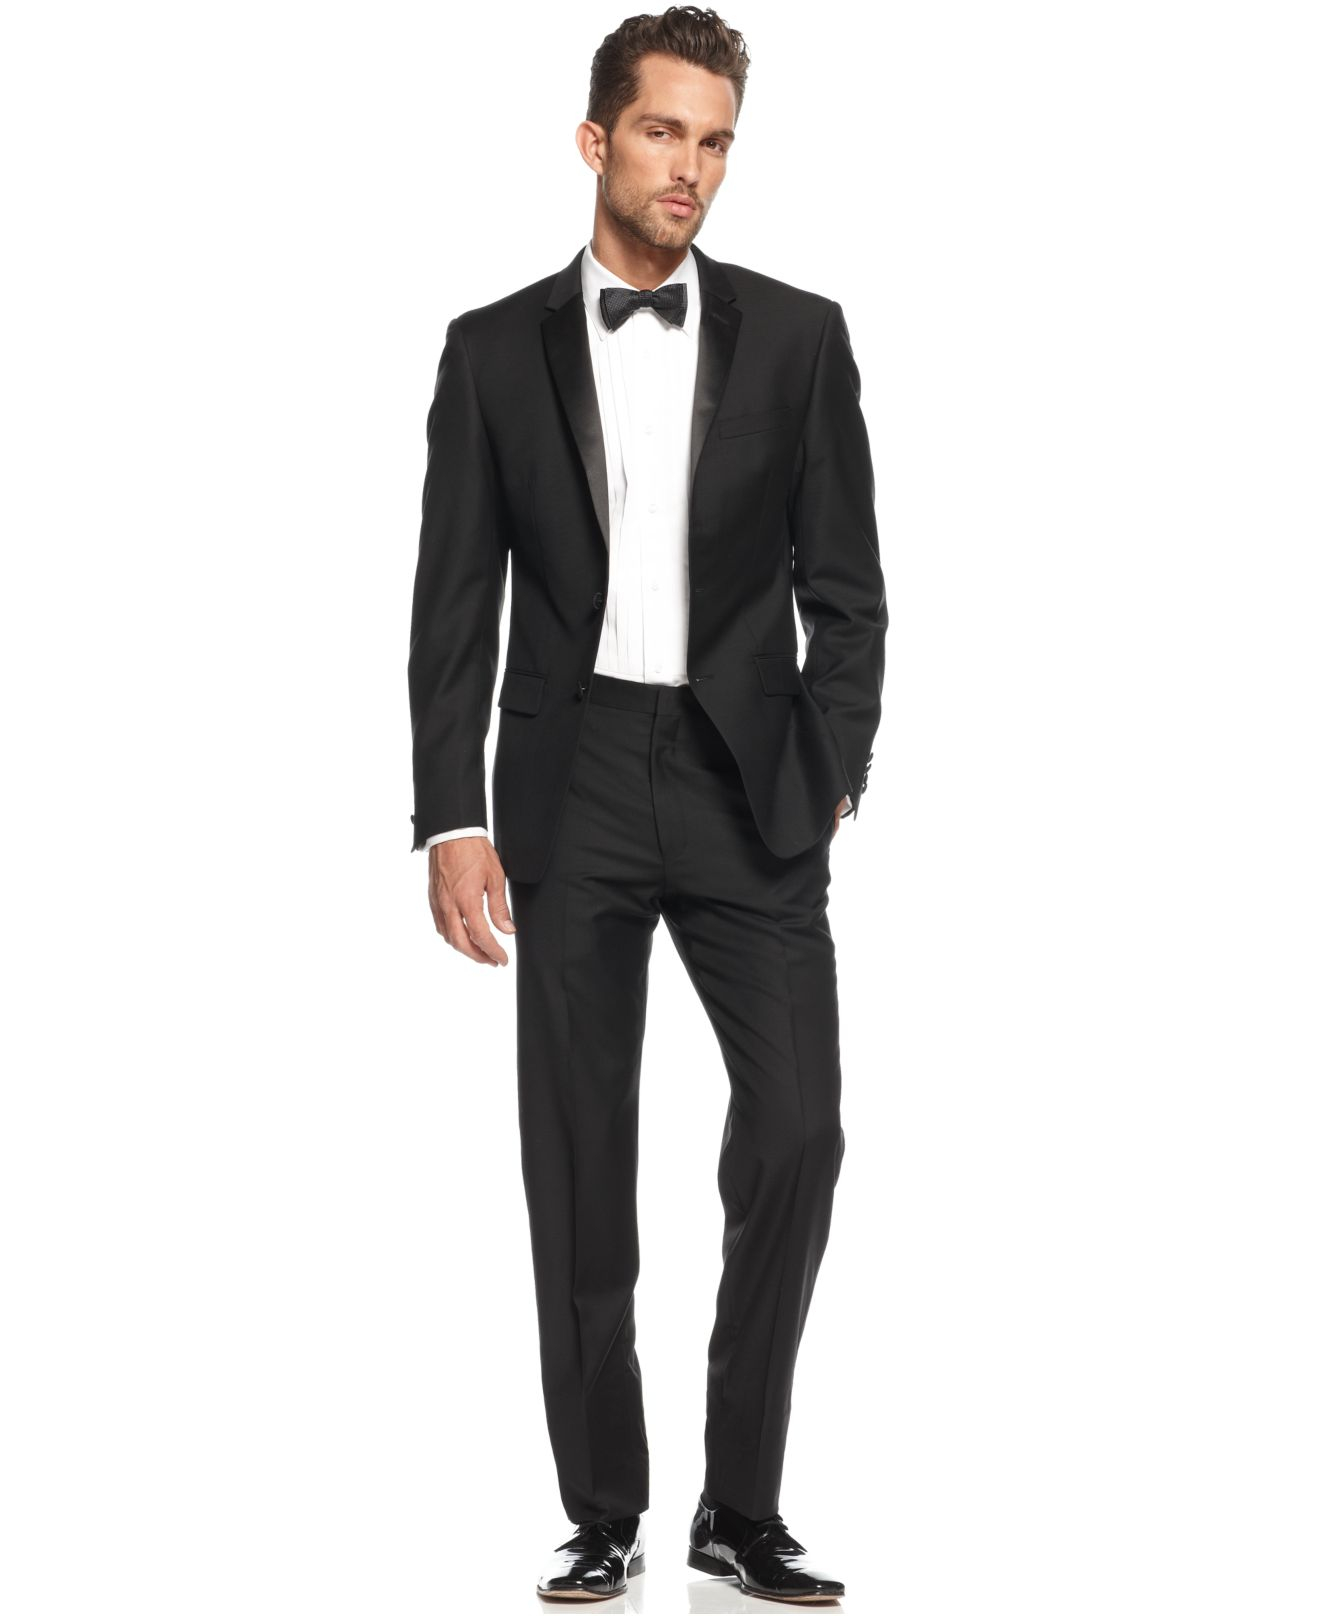 Lyst Dkny Extra Slim Fit Black Tuxedo In Black For Men